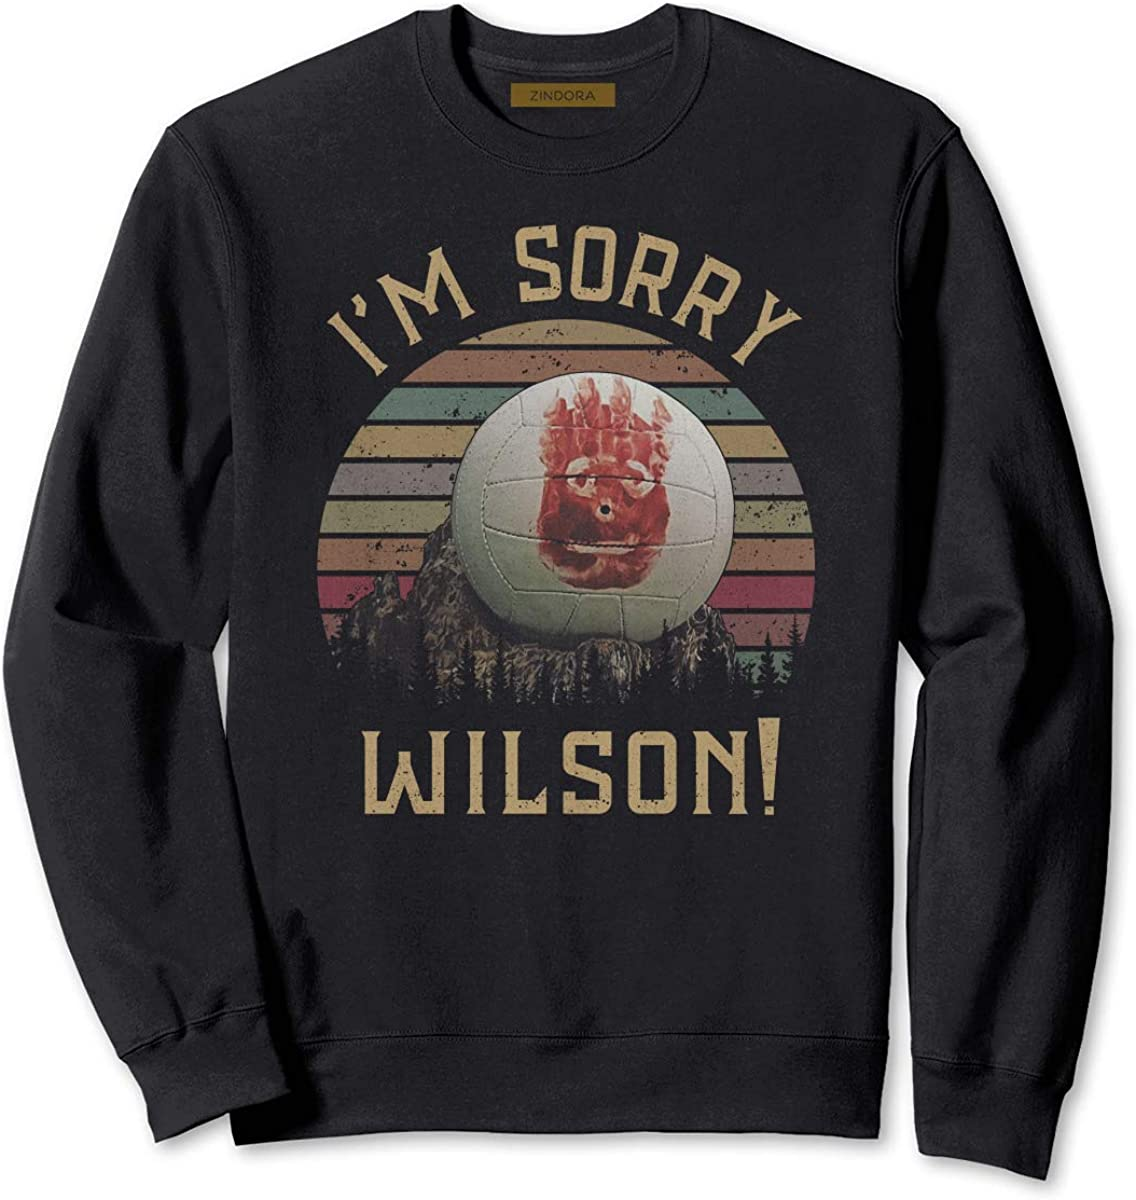 I'm Sorry Reservation Wilson Vintage Max 61% OFF T-Shirt